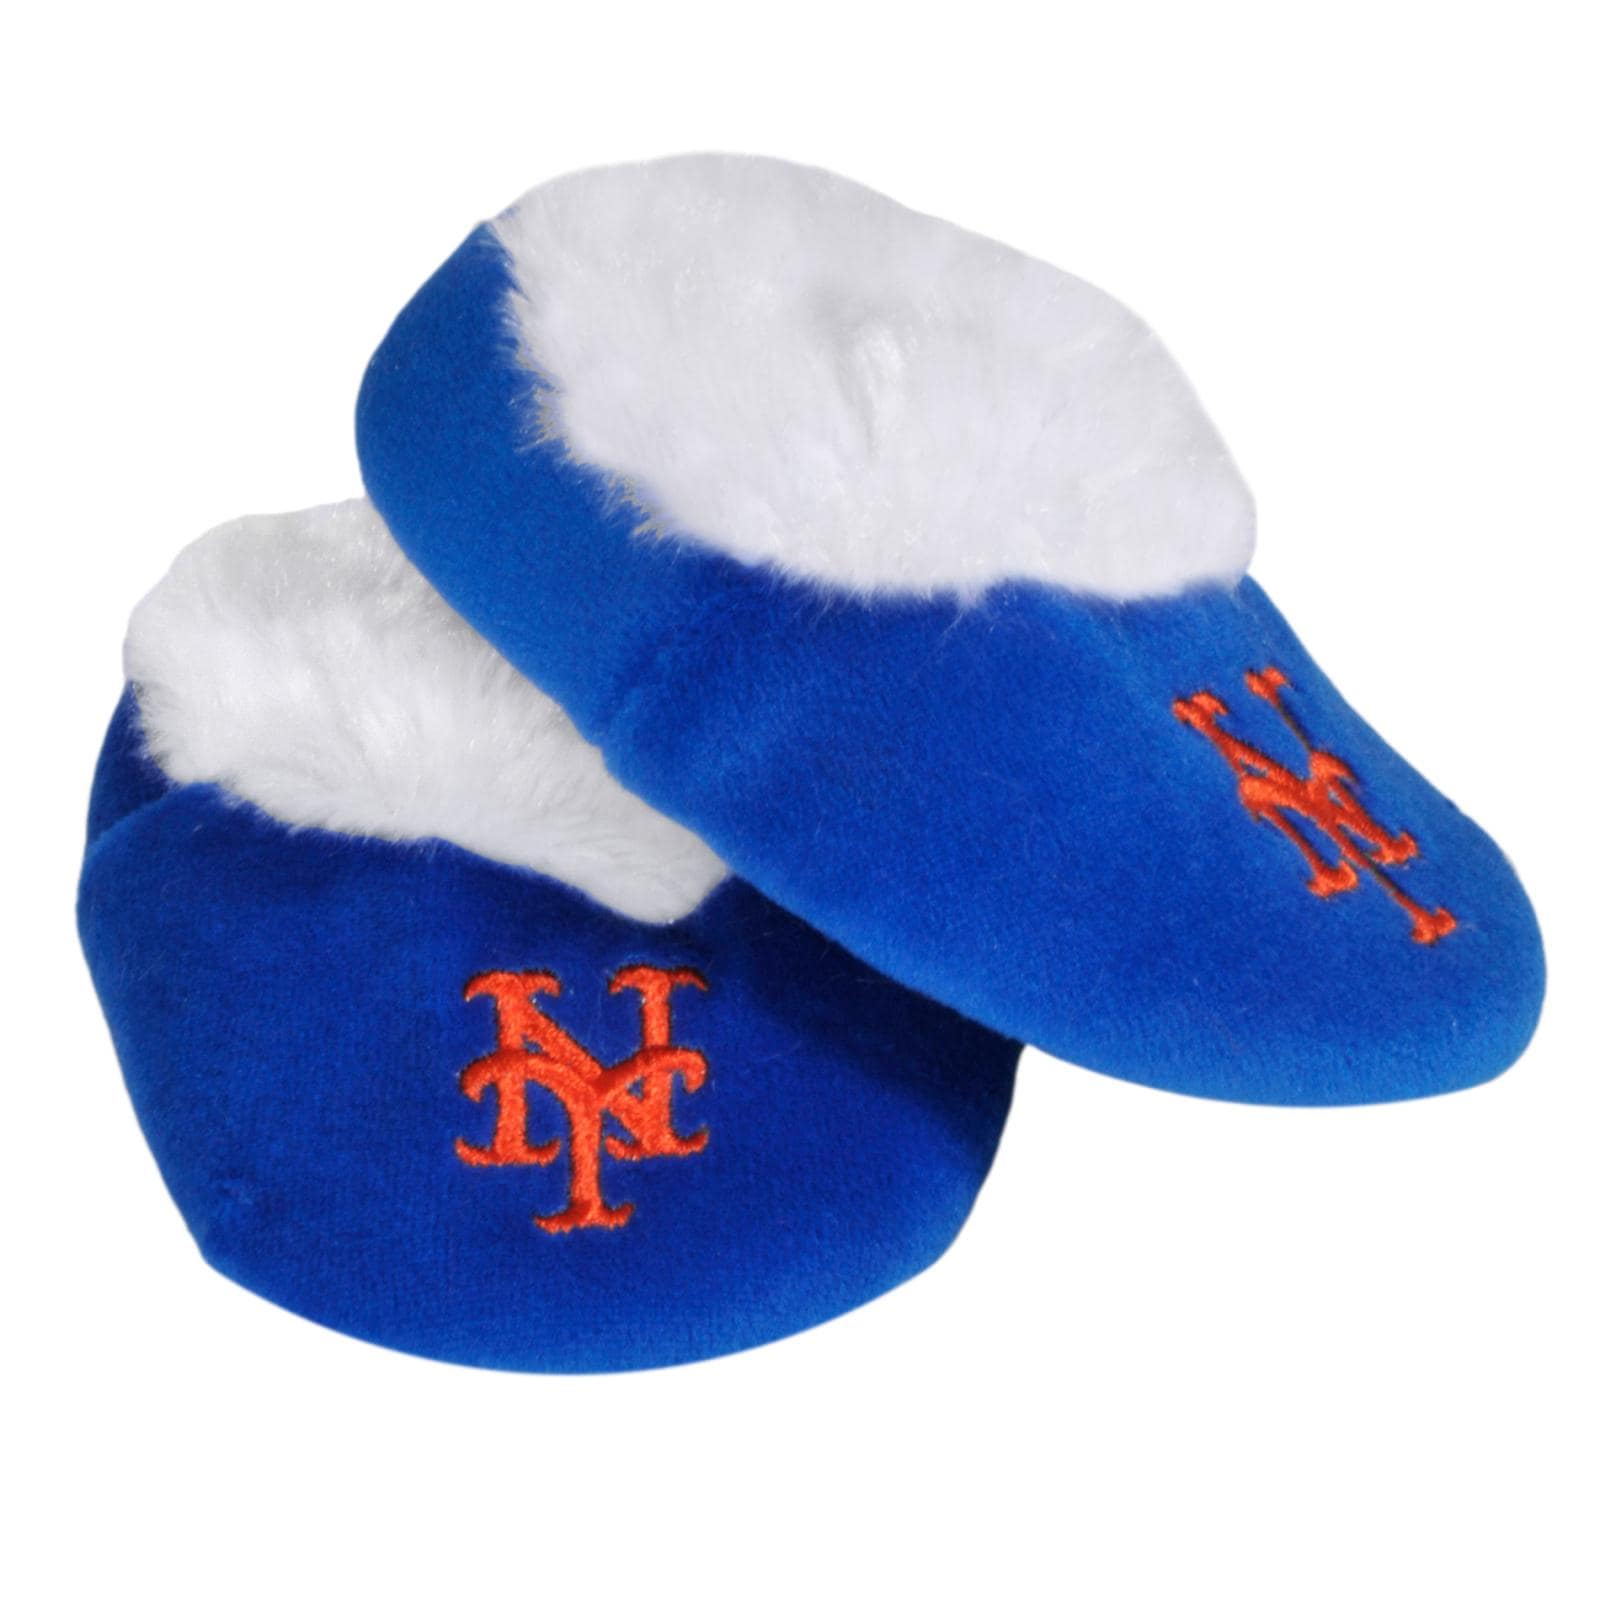 New York Mets Baby Bootie Slippers